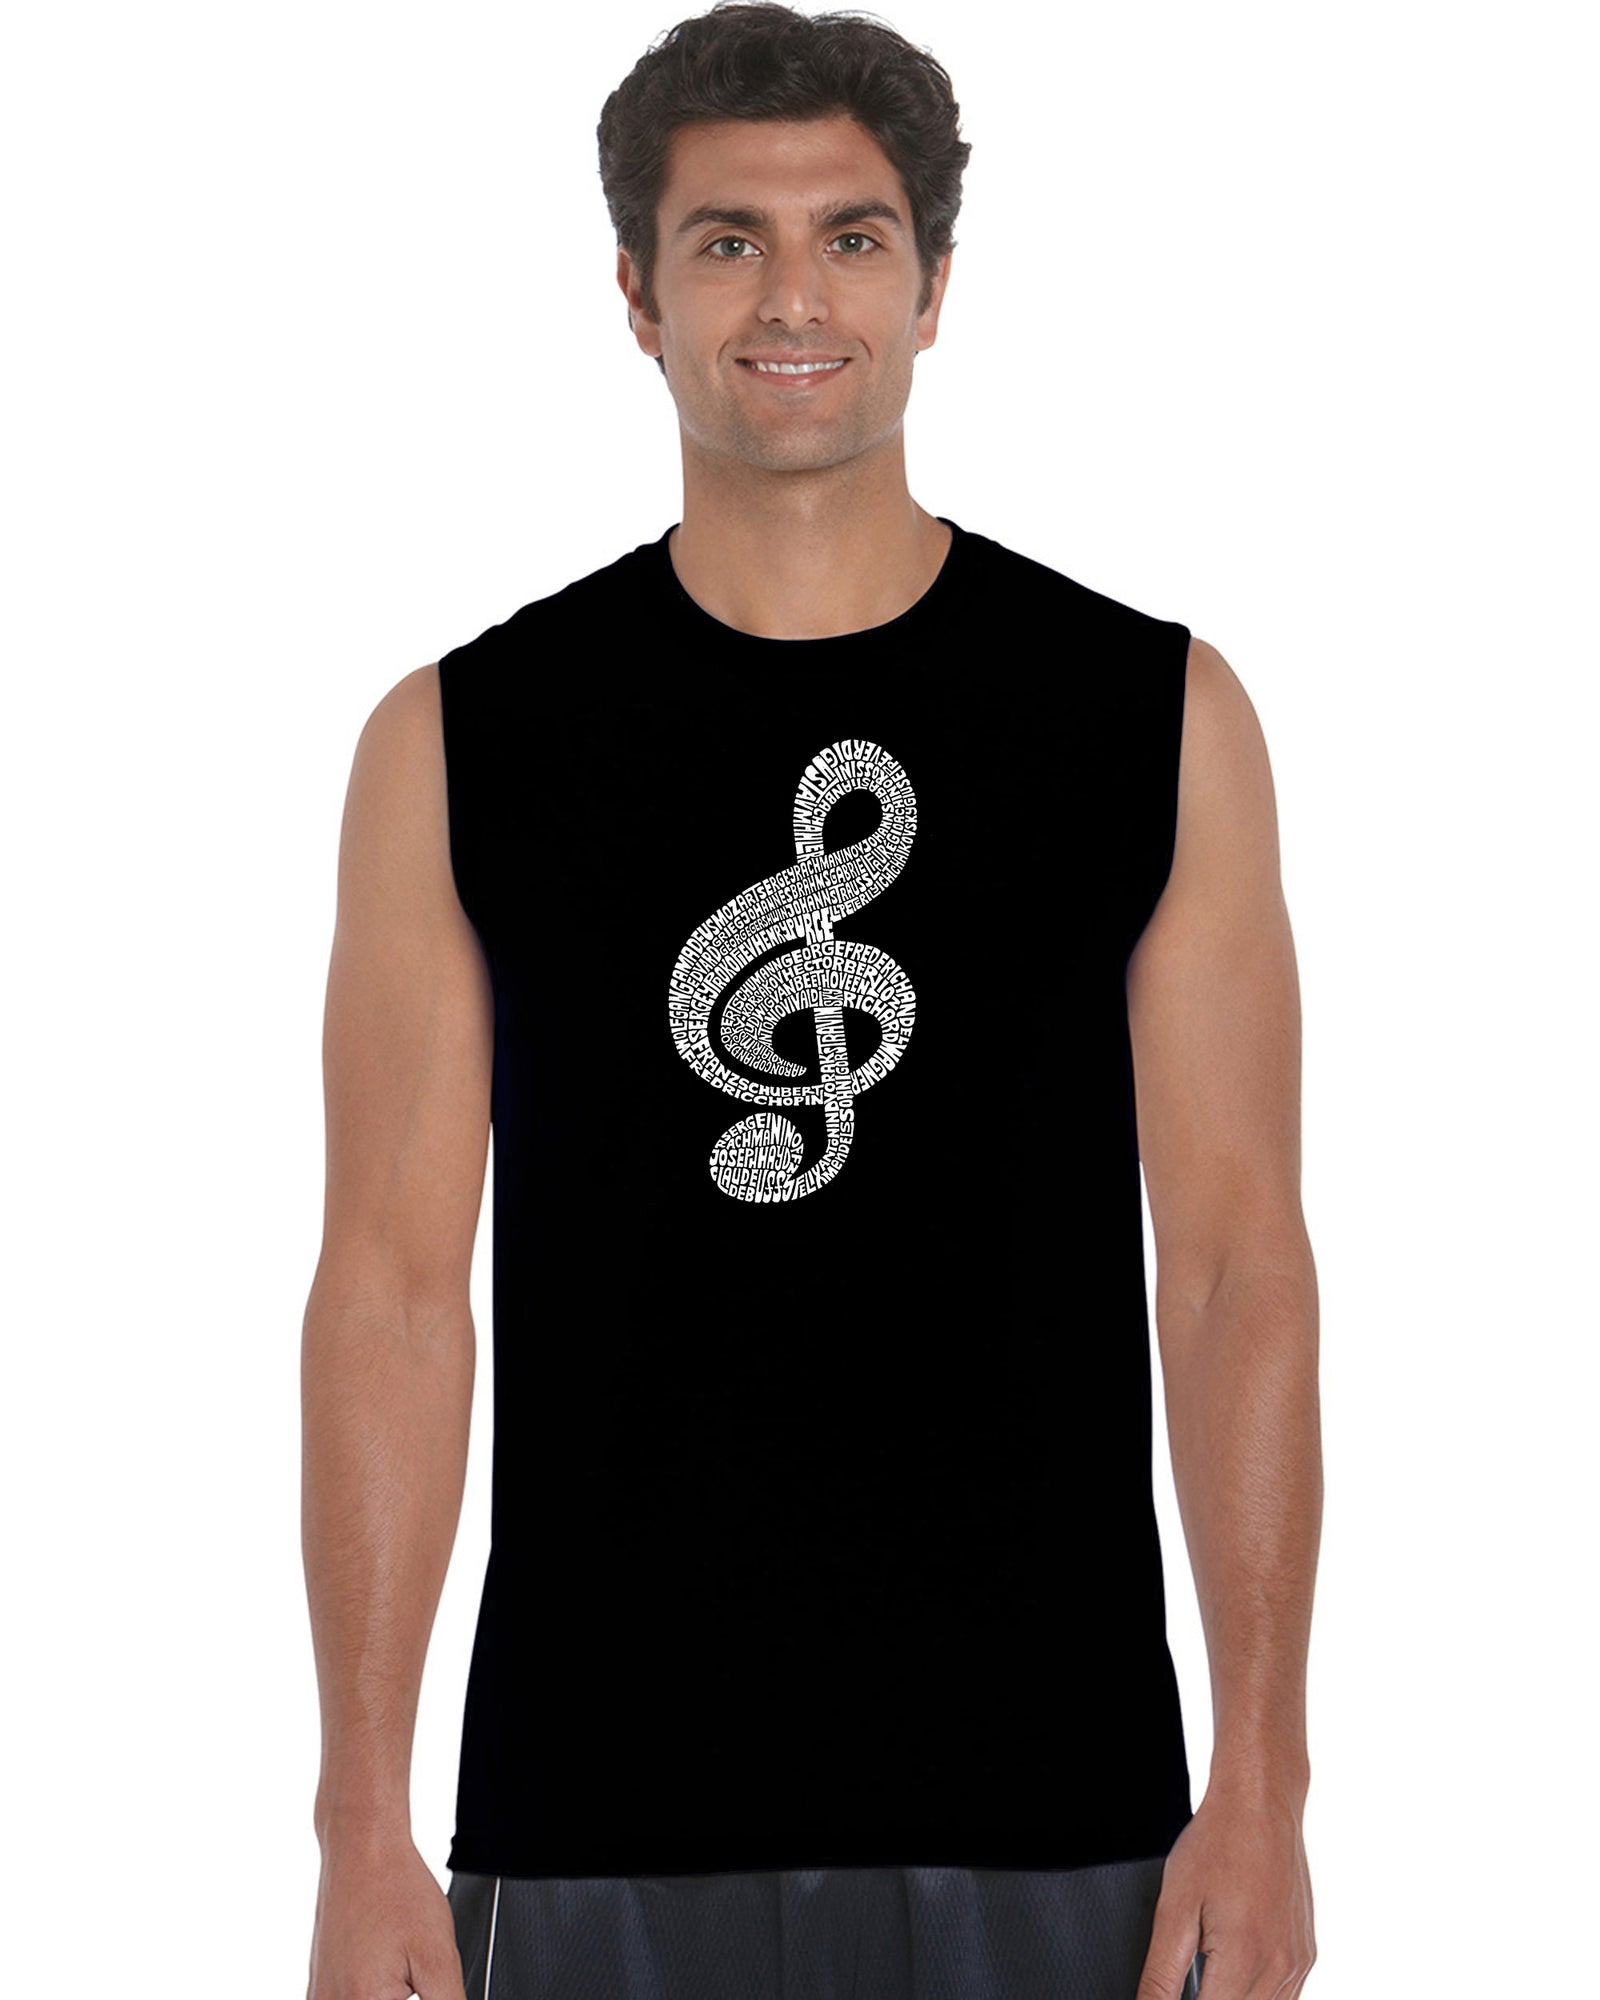 Men's Sleeveless T-shirt - Music Note